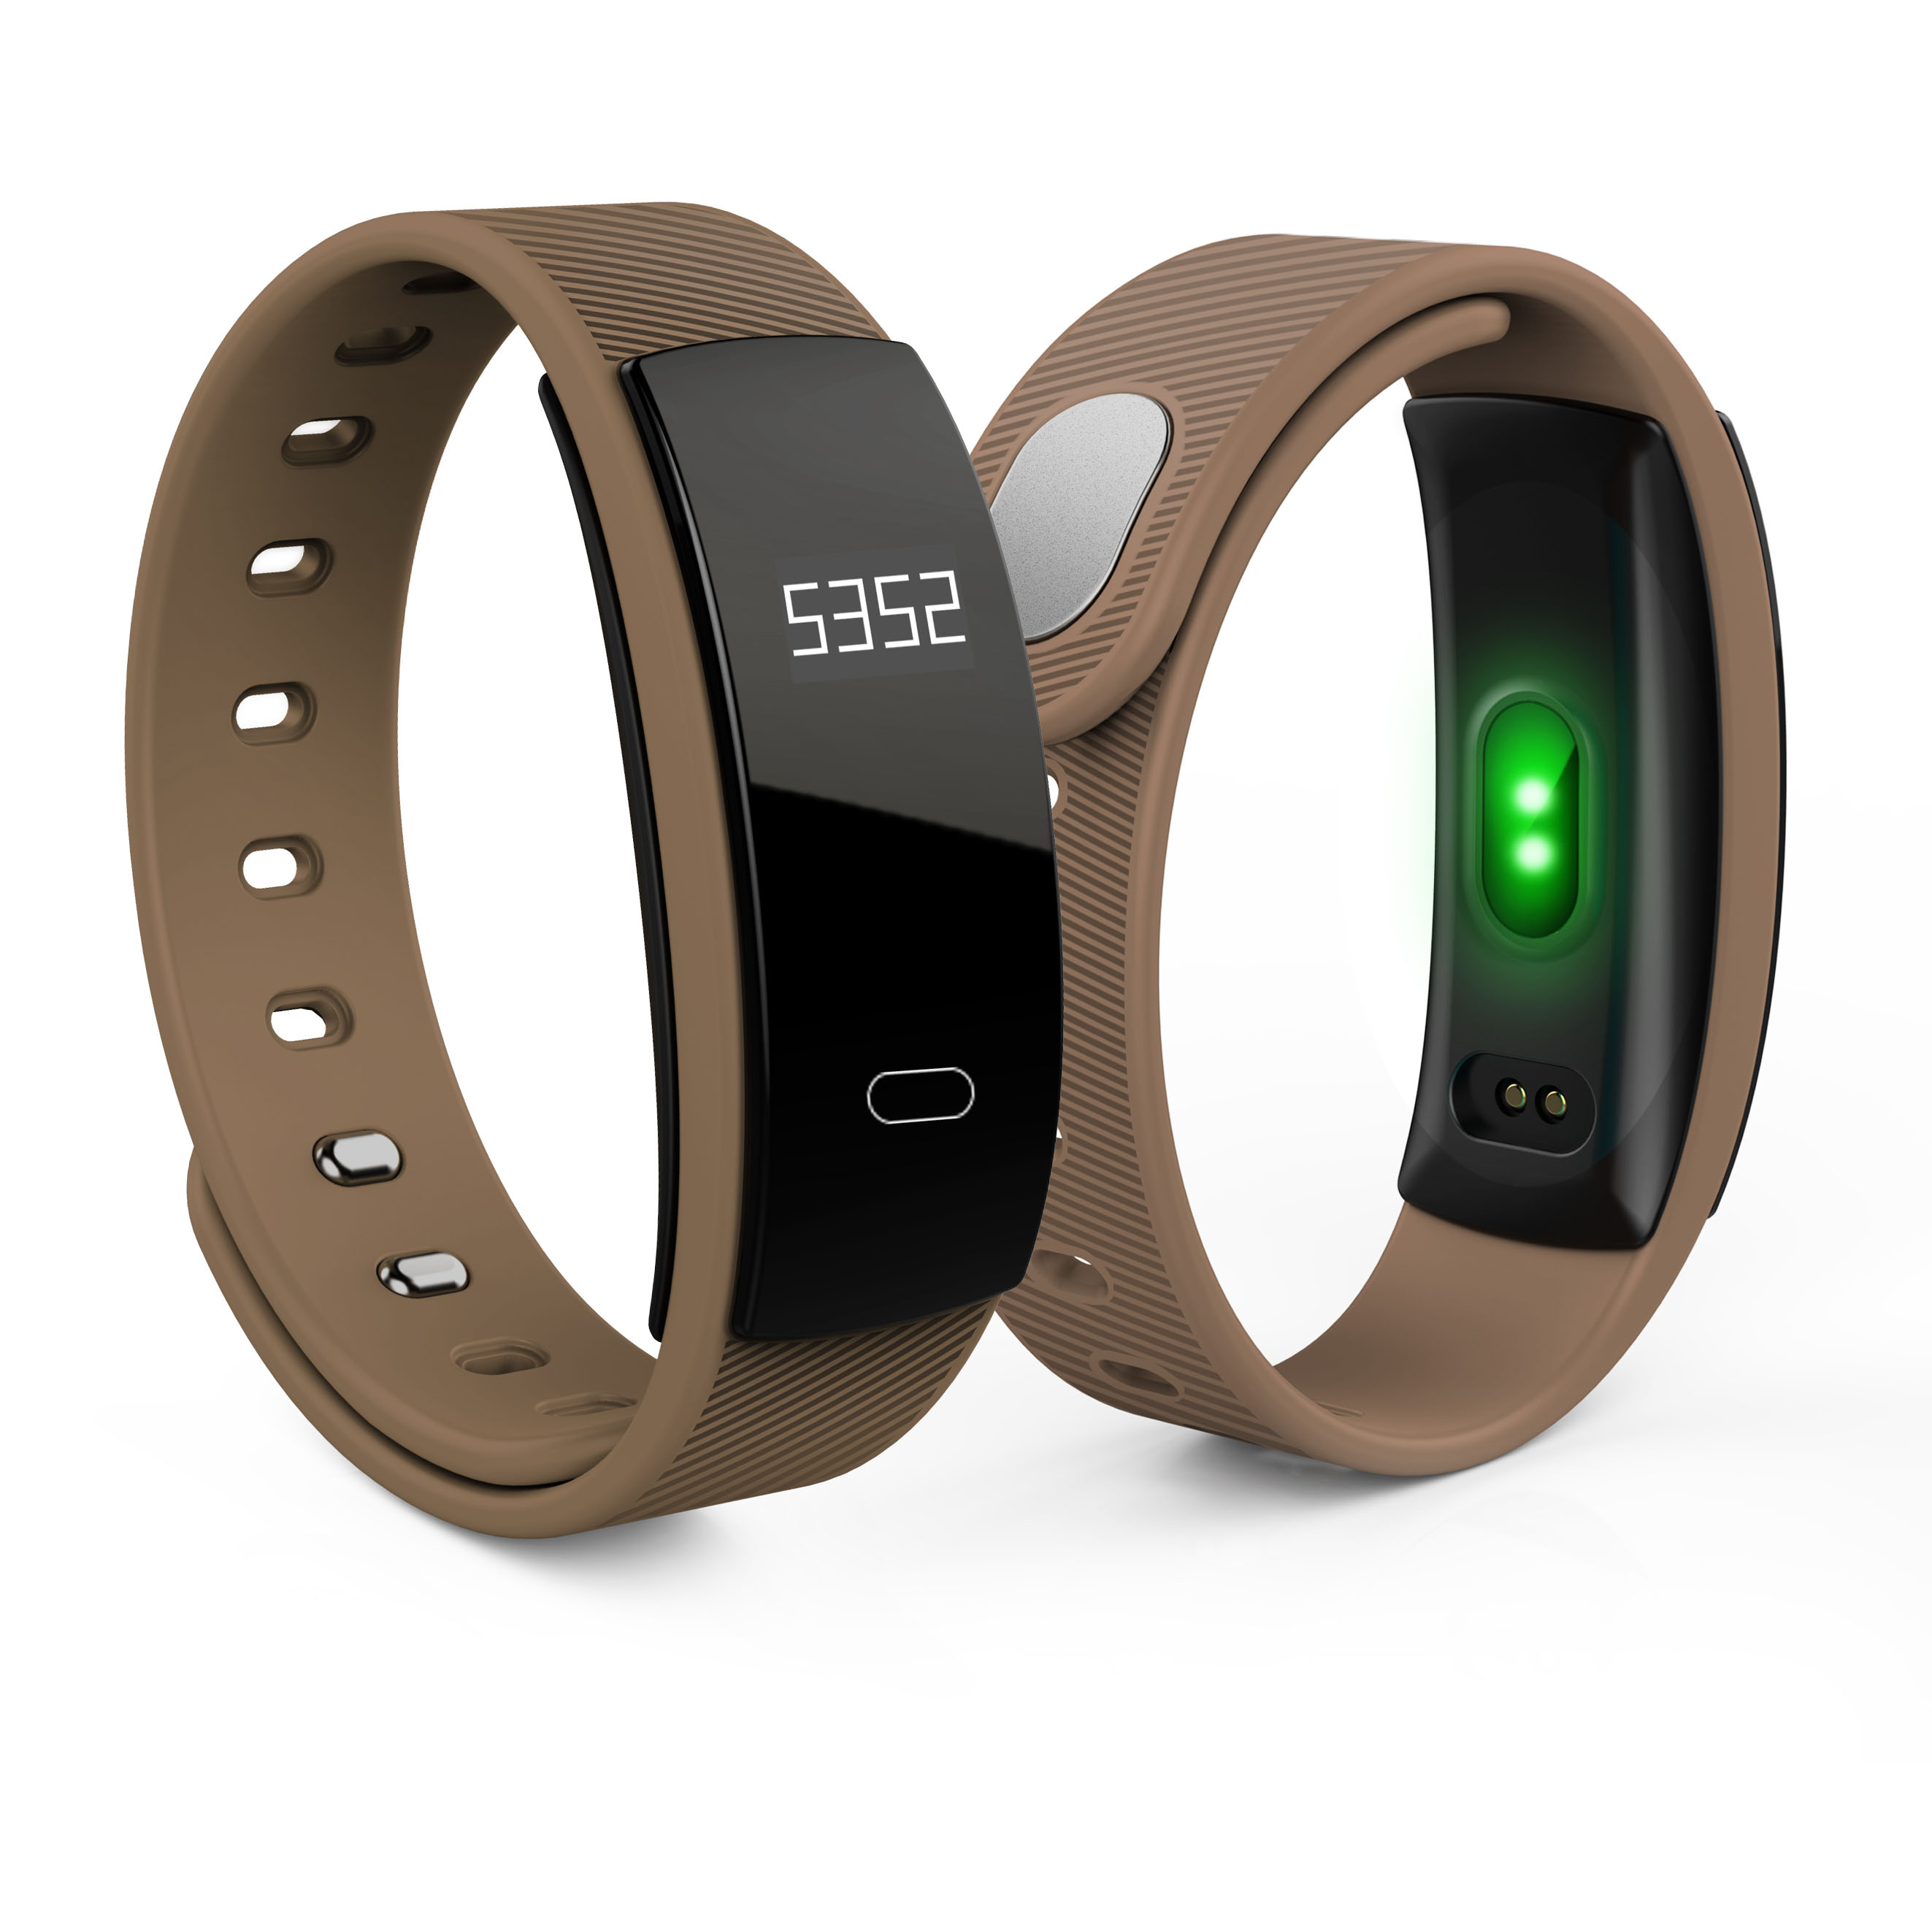 QS80 0.42 inch OLED screen bluetooth ble 4.0 ABS + PC body nordic51822 CPU health wrist band